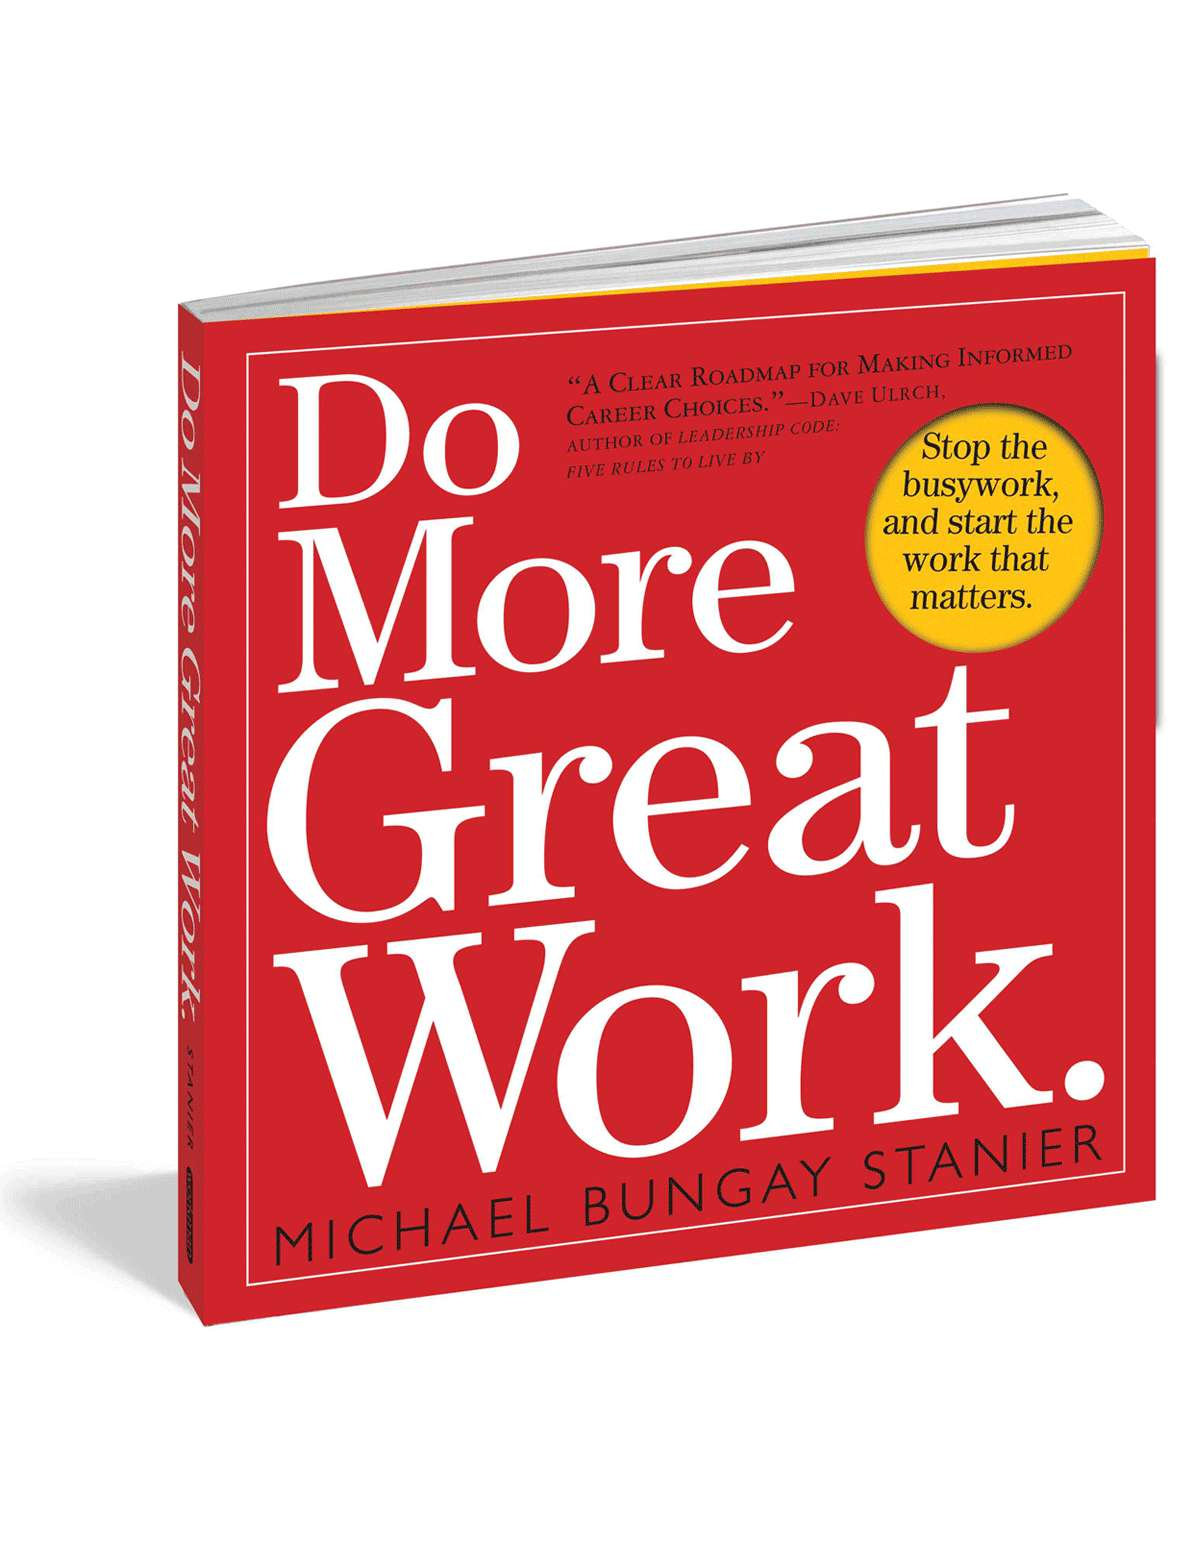 Do More Great Work: Stop the Busywork, and Start the Work That Matters - Free Book Summary